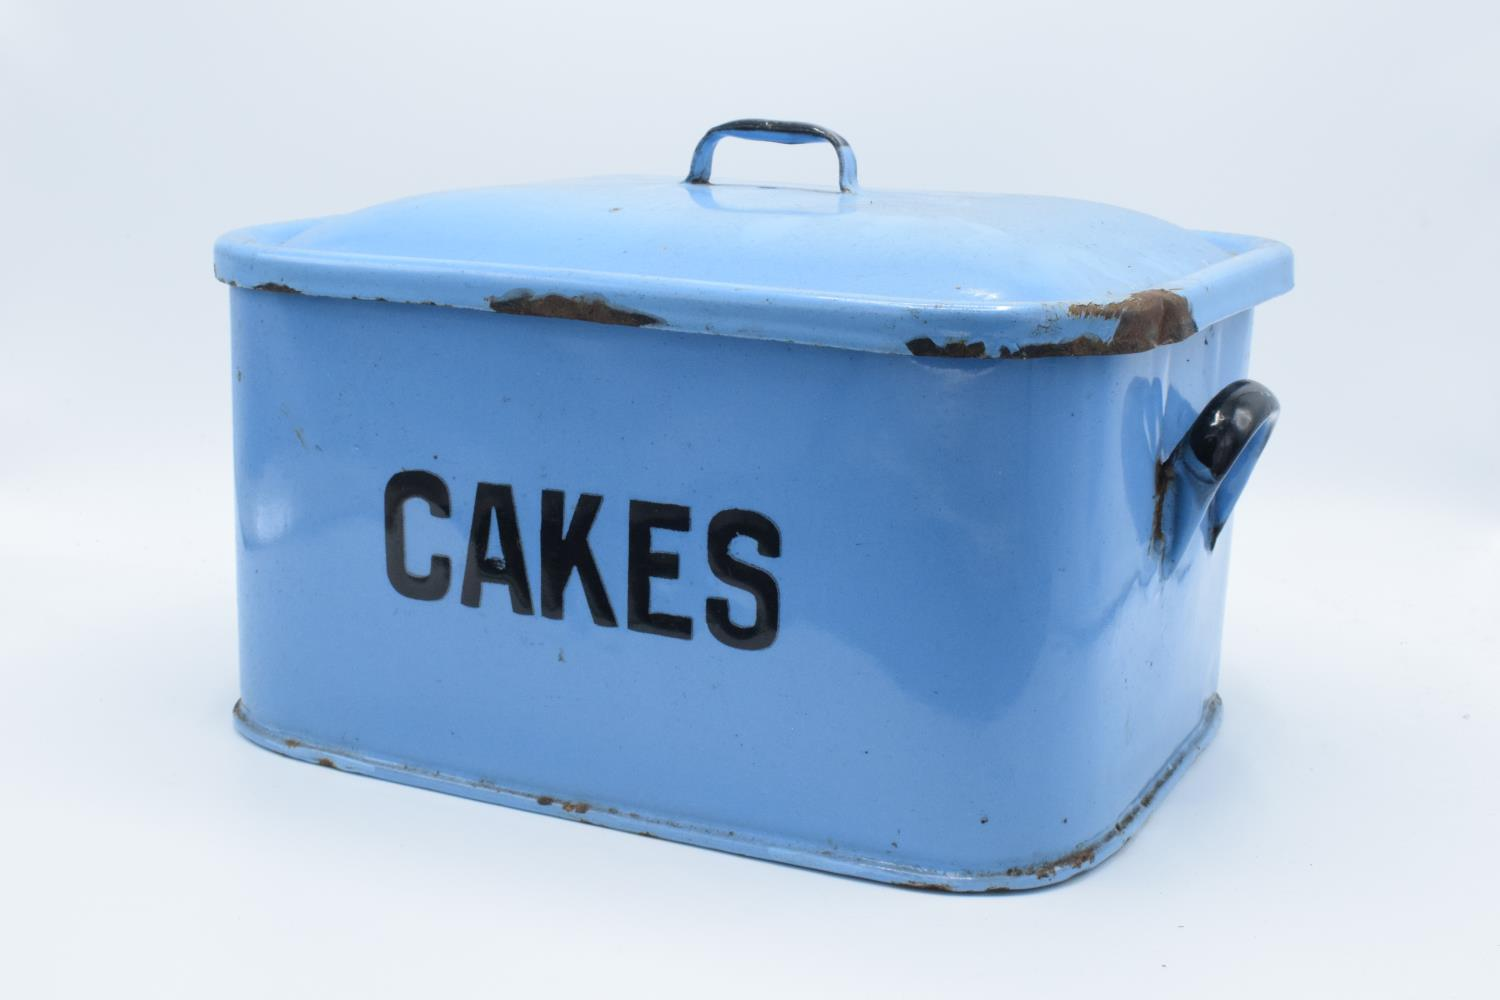 Original 1960s blue enamel cake tin (untouched condition) Loss of enamel in some places, slightly - Image 2 of 3